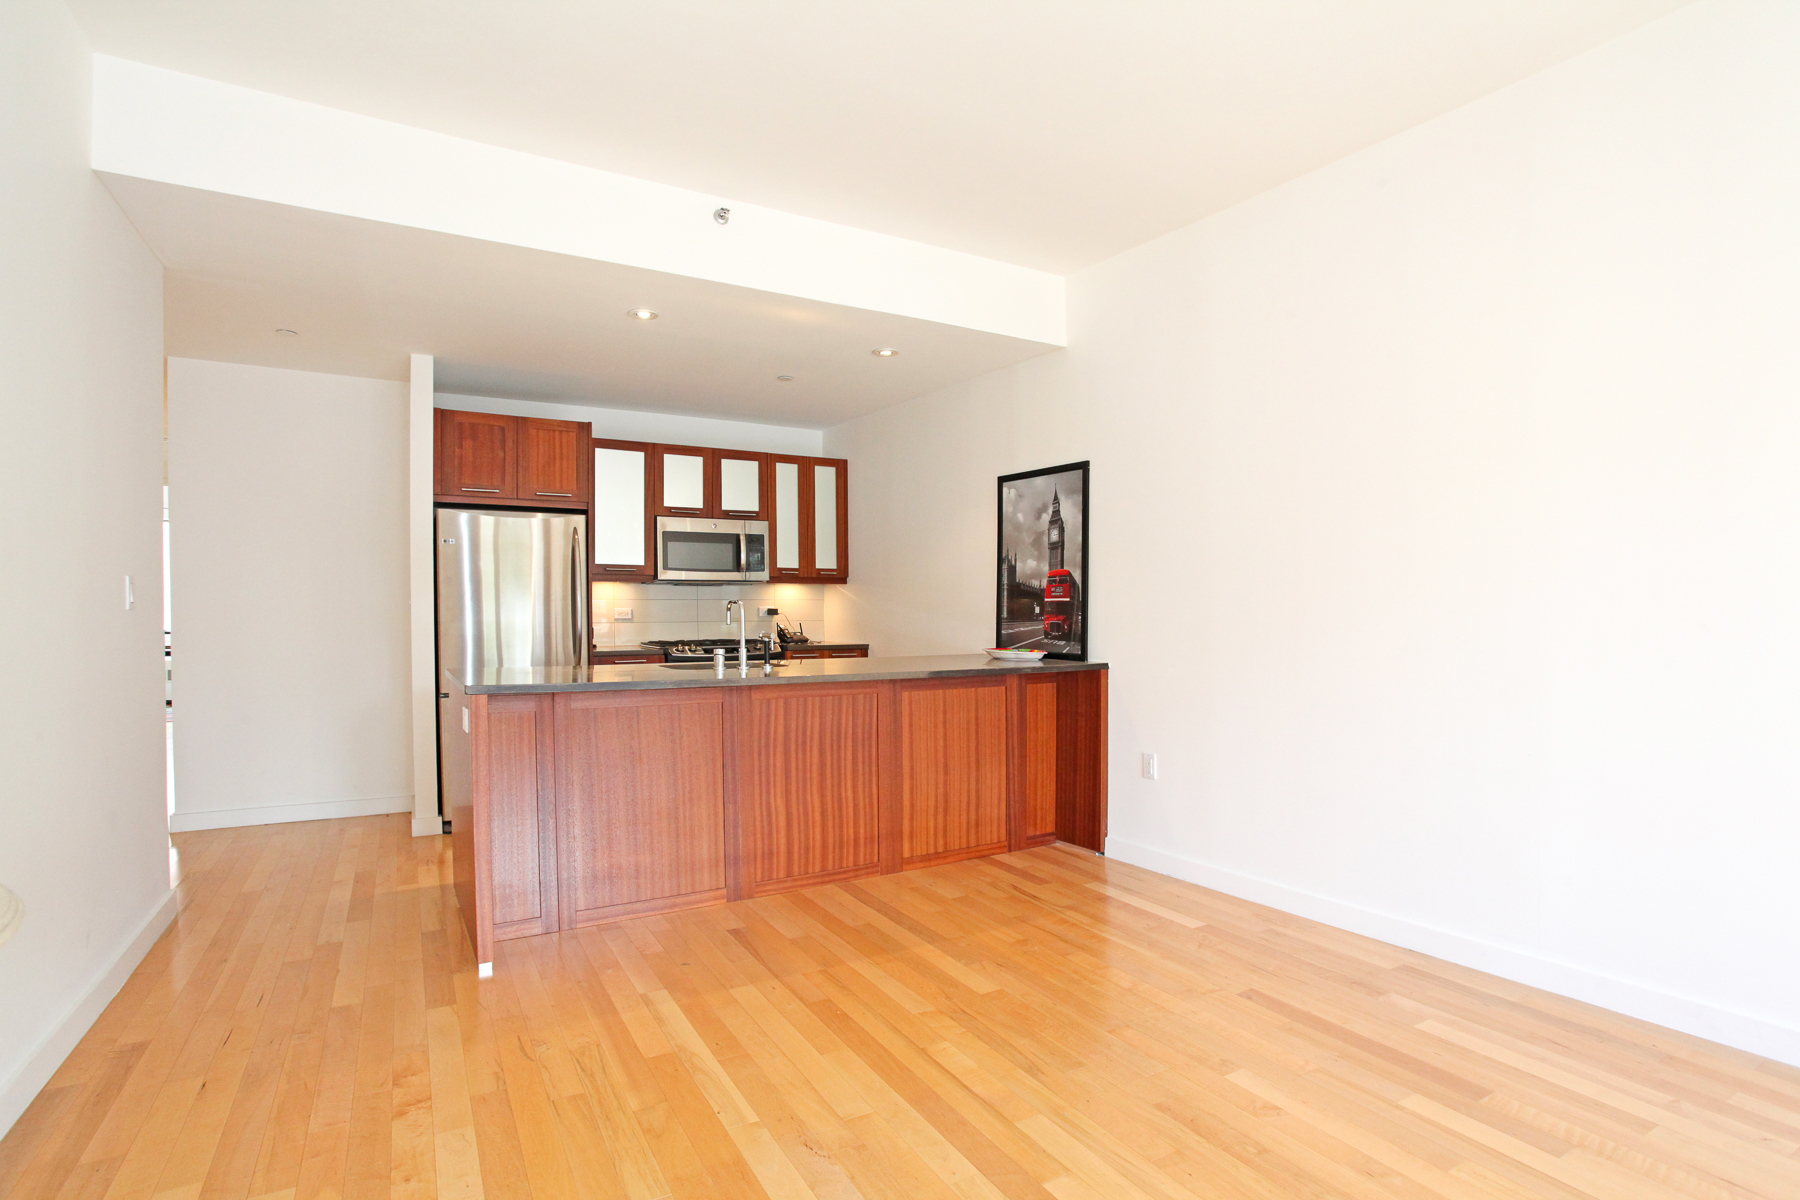 Property For Sale at New 2 BR Condo with 2 Terraces and Washer and Dryer